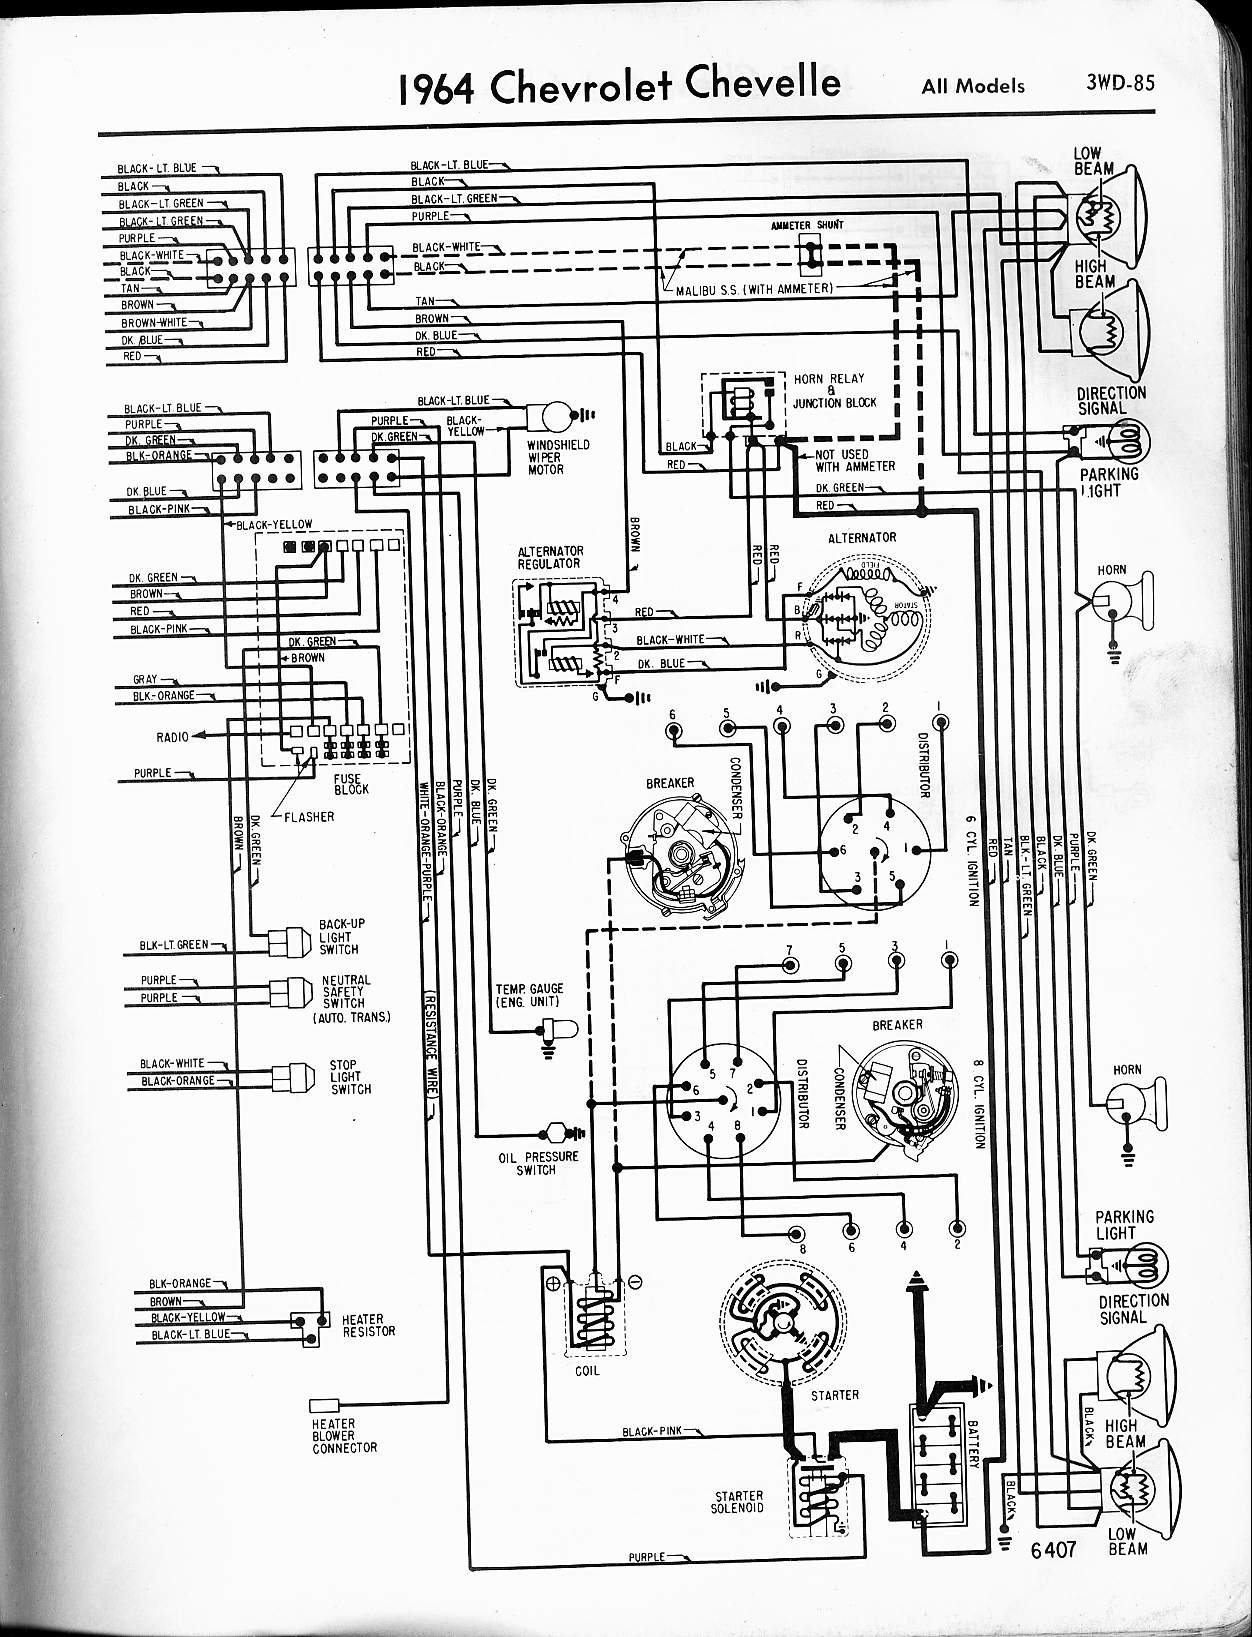 MWireChev64_3WD 085 chevy diagrams 1966 chevelle wiring harness at gsmx.co